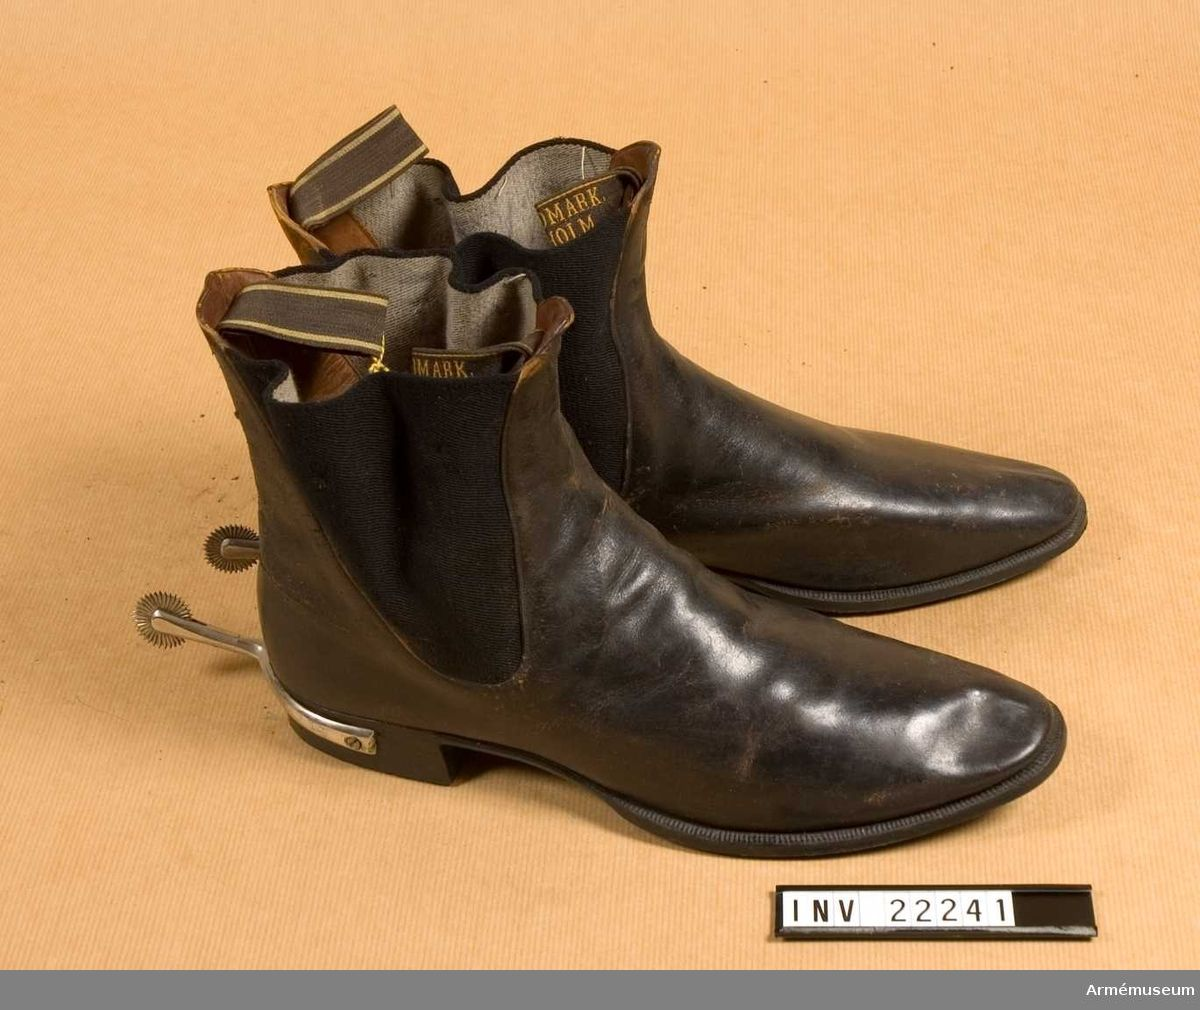 Officer's Boot at the 2nd Life Grenadier Regiment